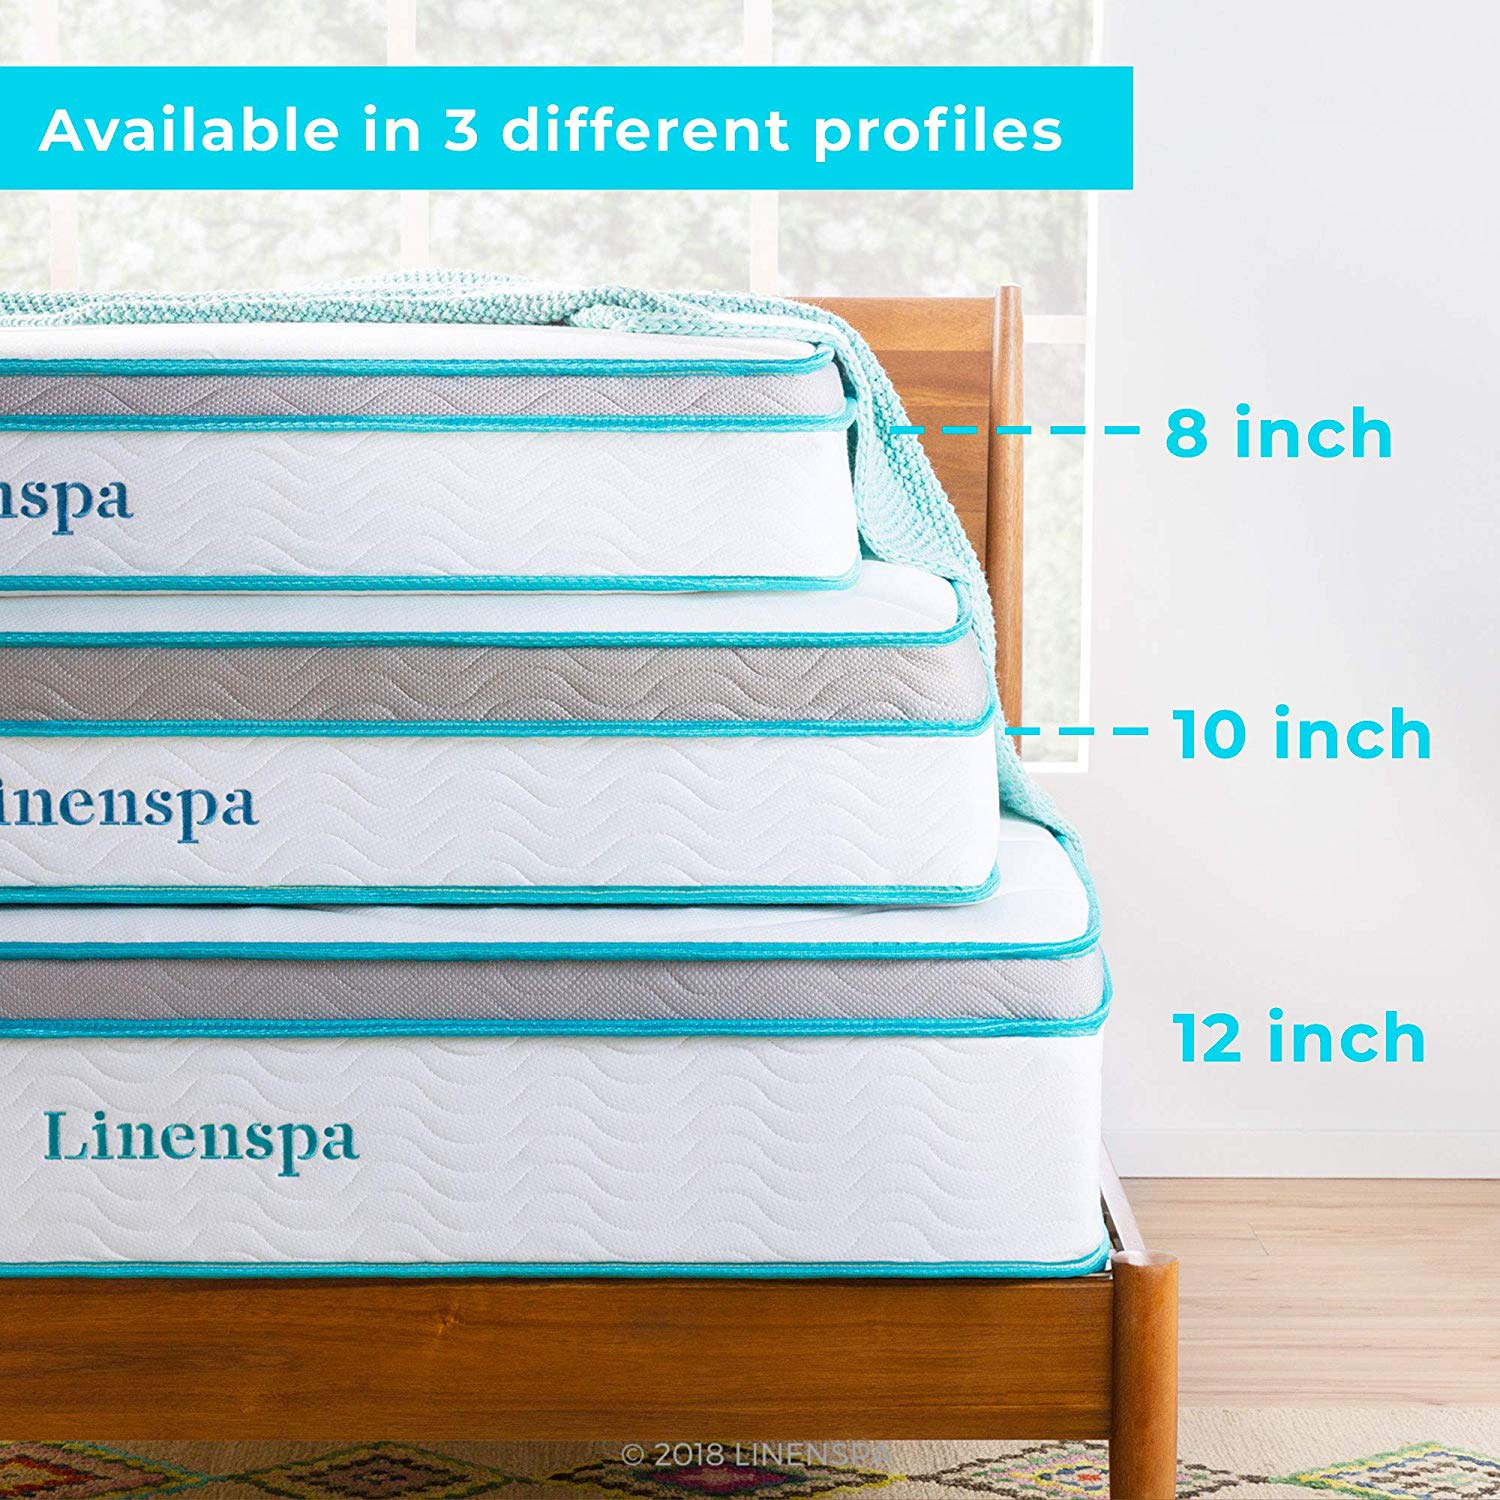 Linenspa twin mattress